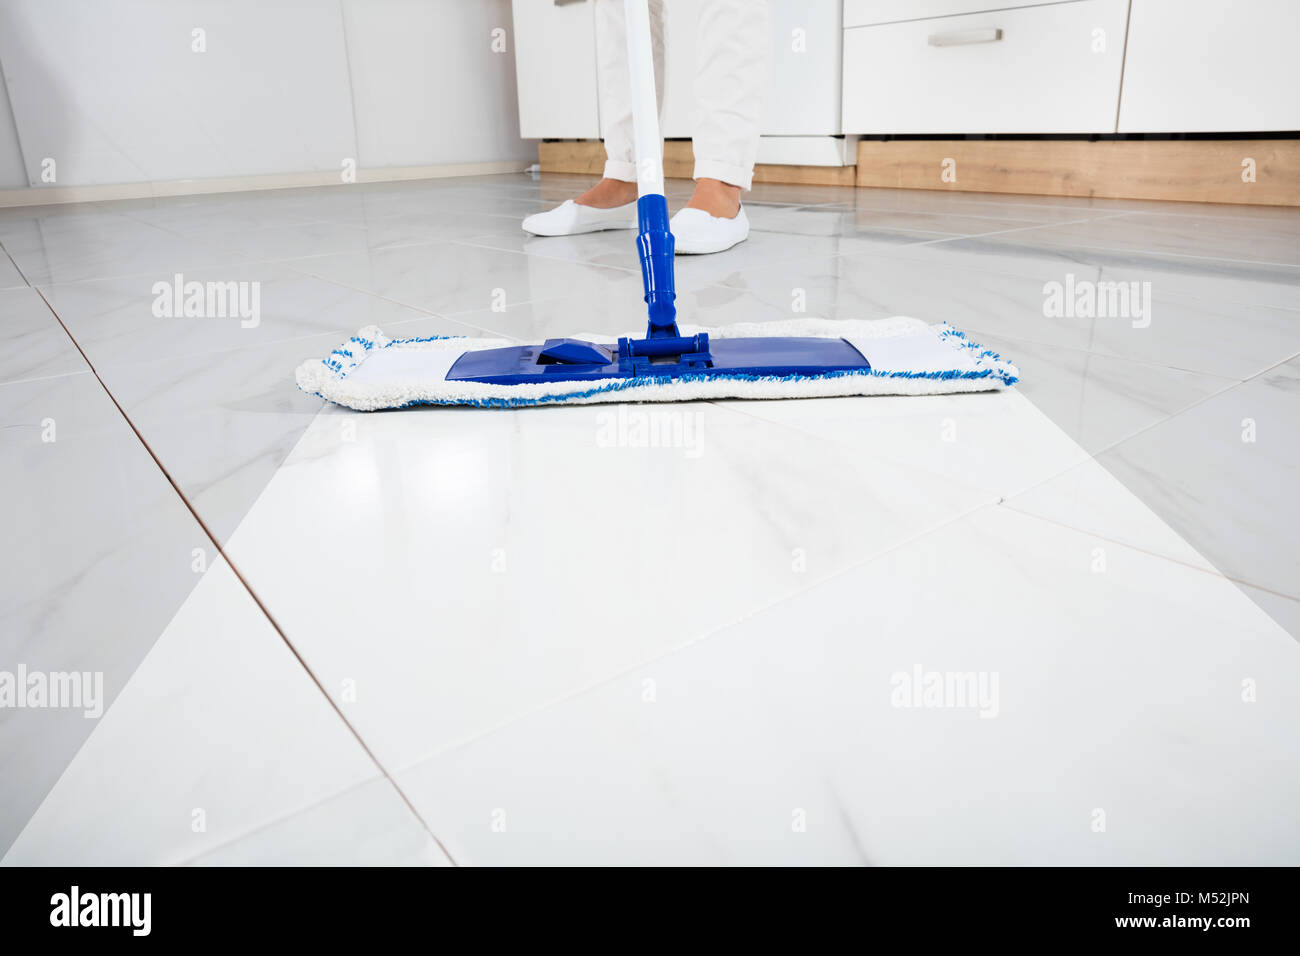 Low section of person wiping floor with mop in kitchen room stock